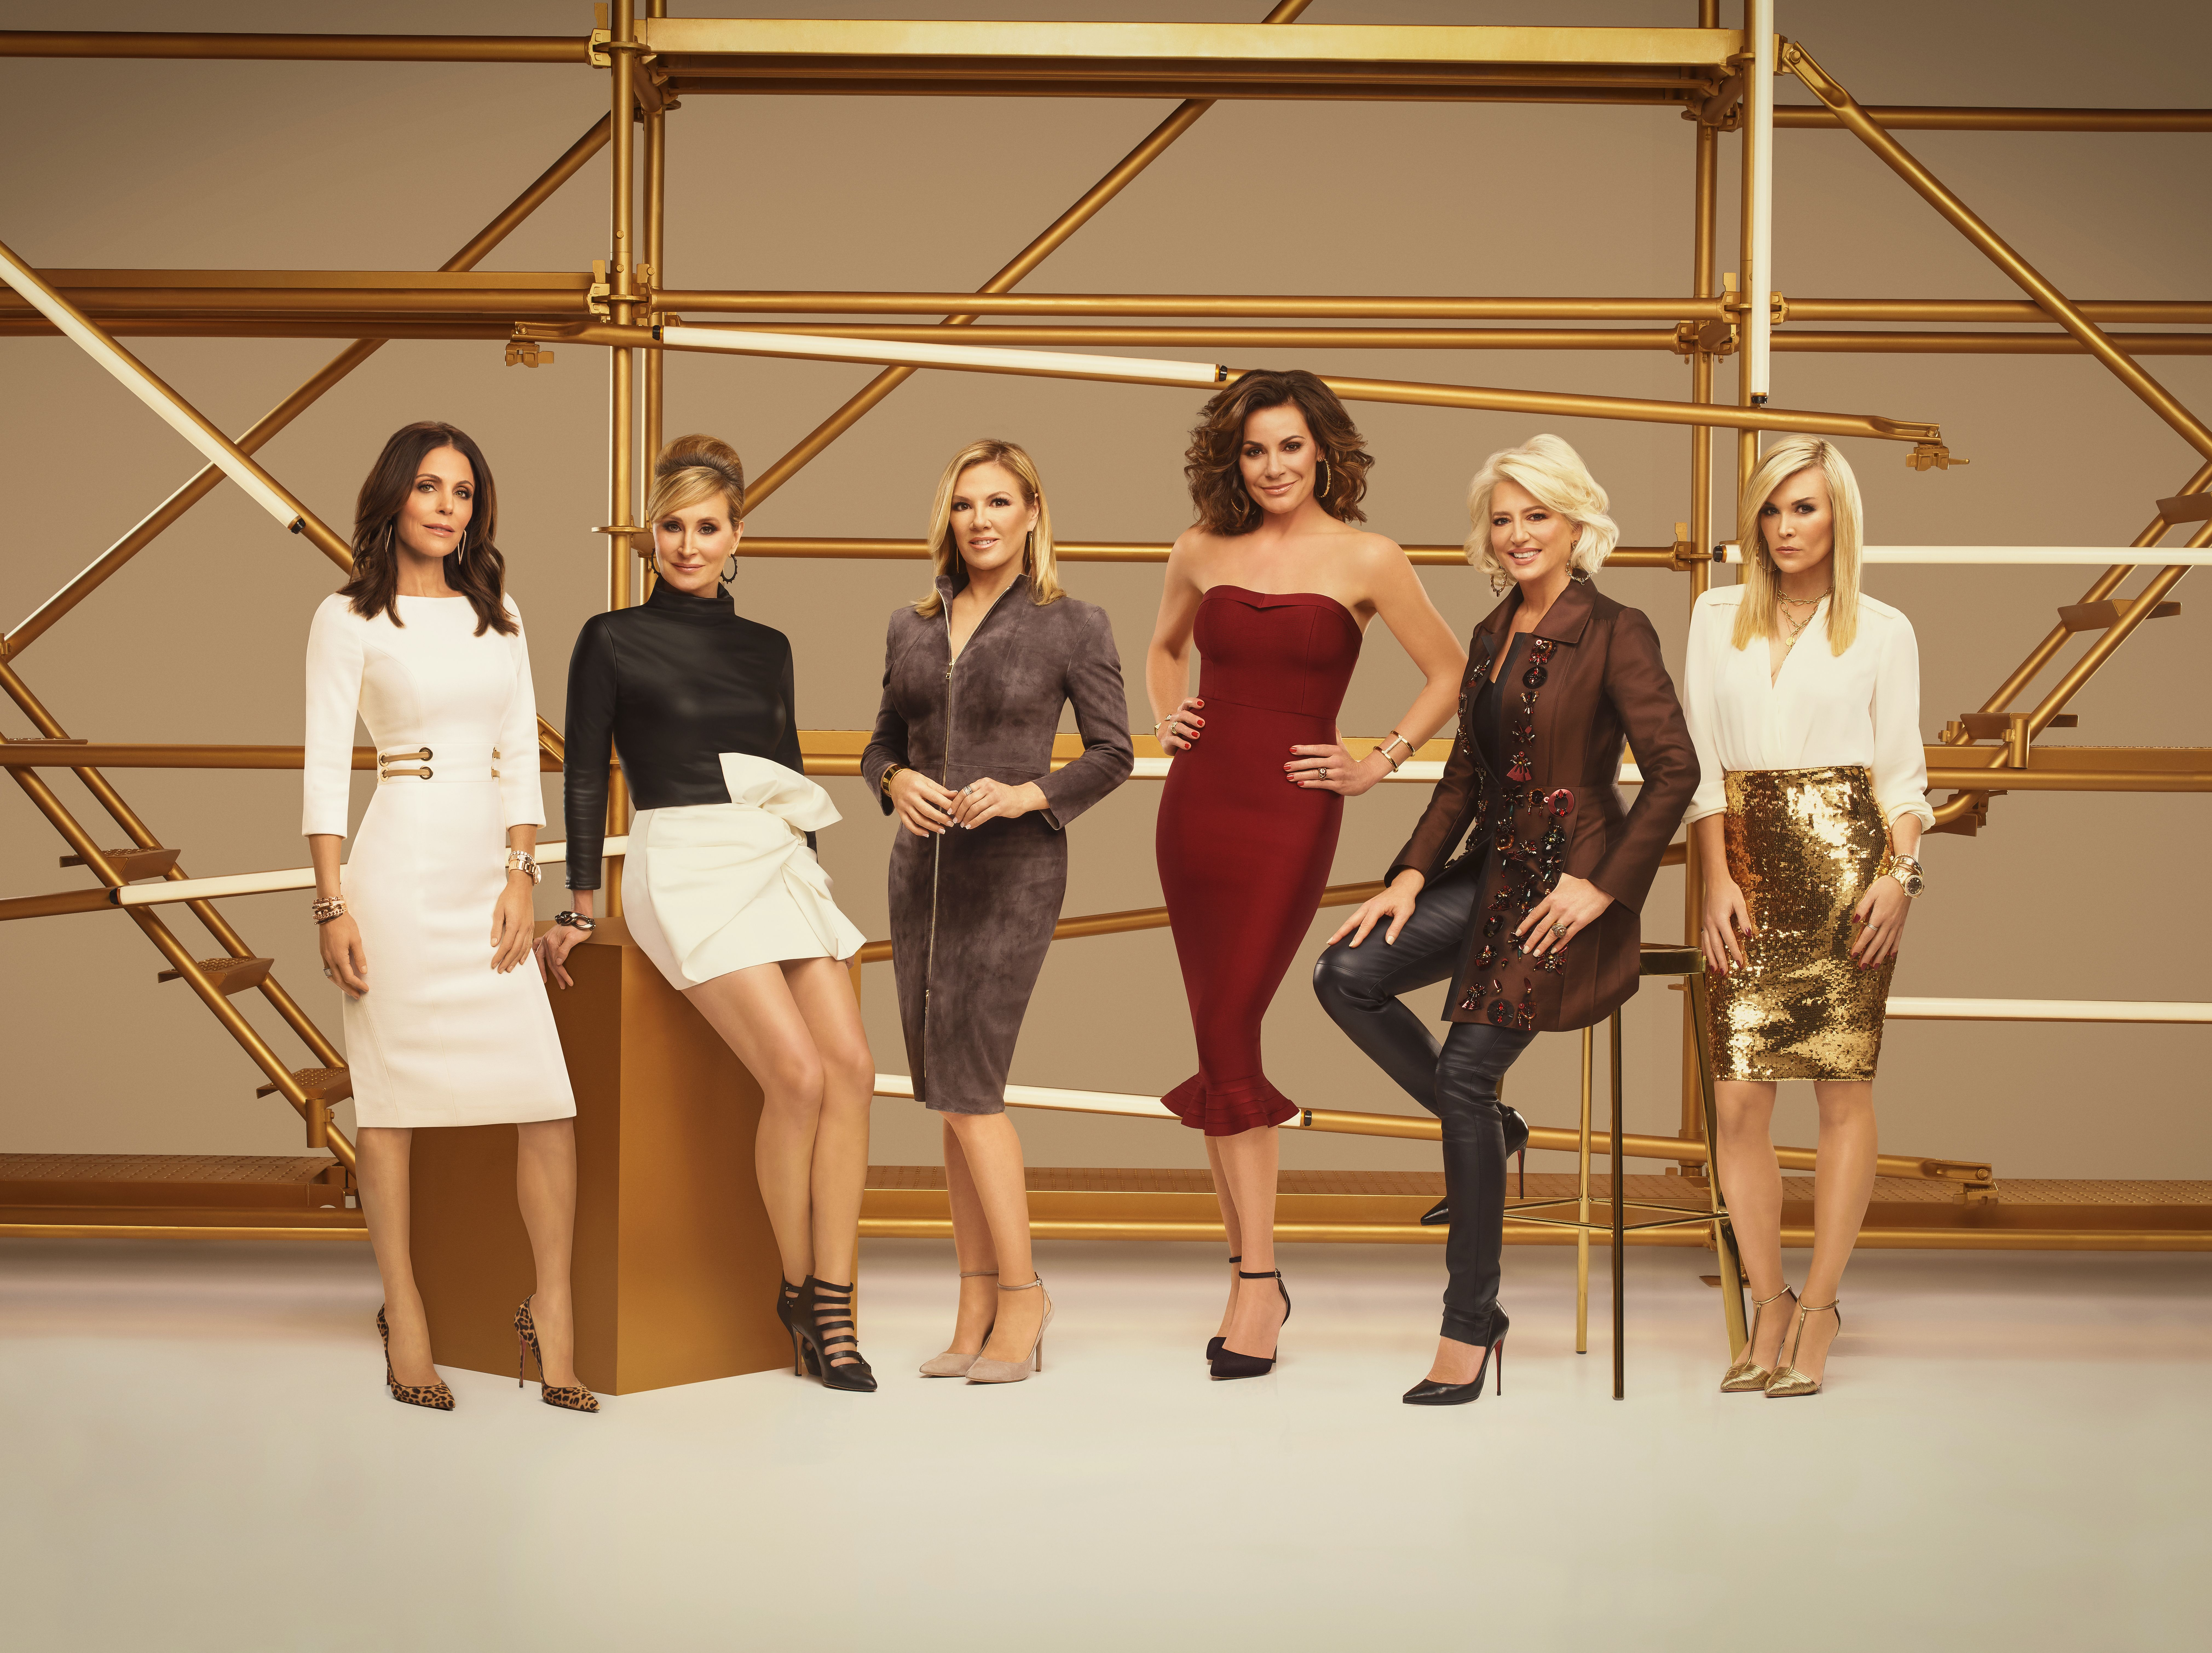 The Real Housewives Of New York City Returns With Explosive Season 11 Trailer Housewives Of New York Real Housewives Ramona Singer